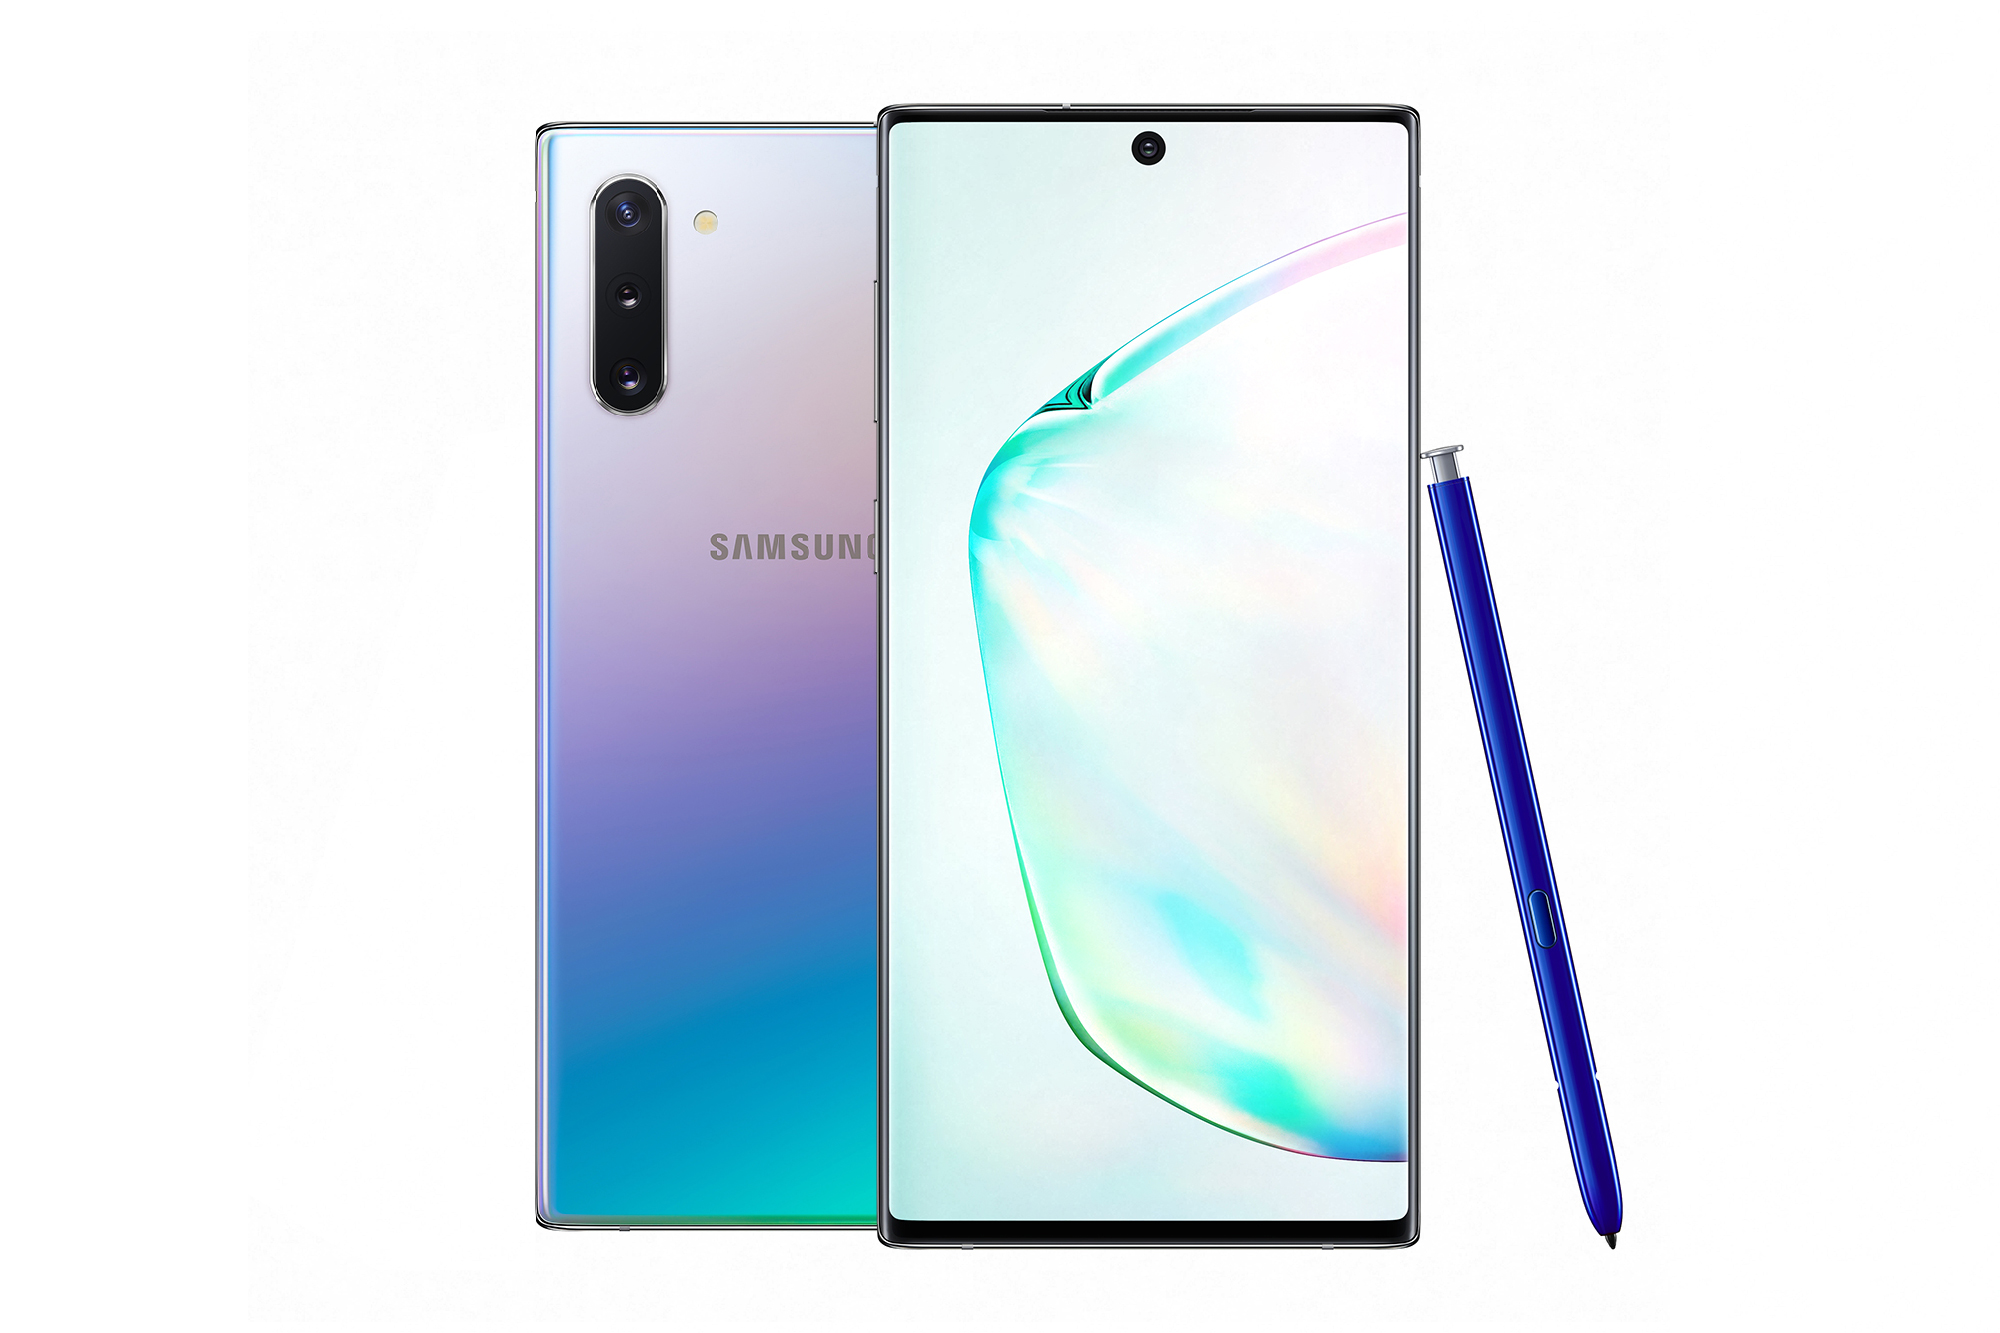 Introducing Galaxy Note10: Designed to Bring Passions to Life with